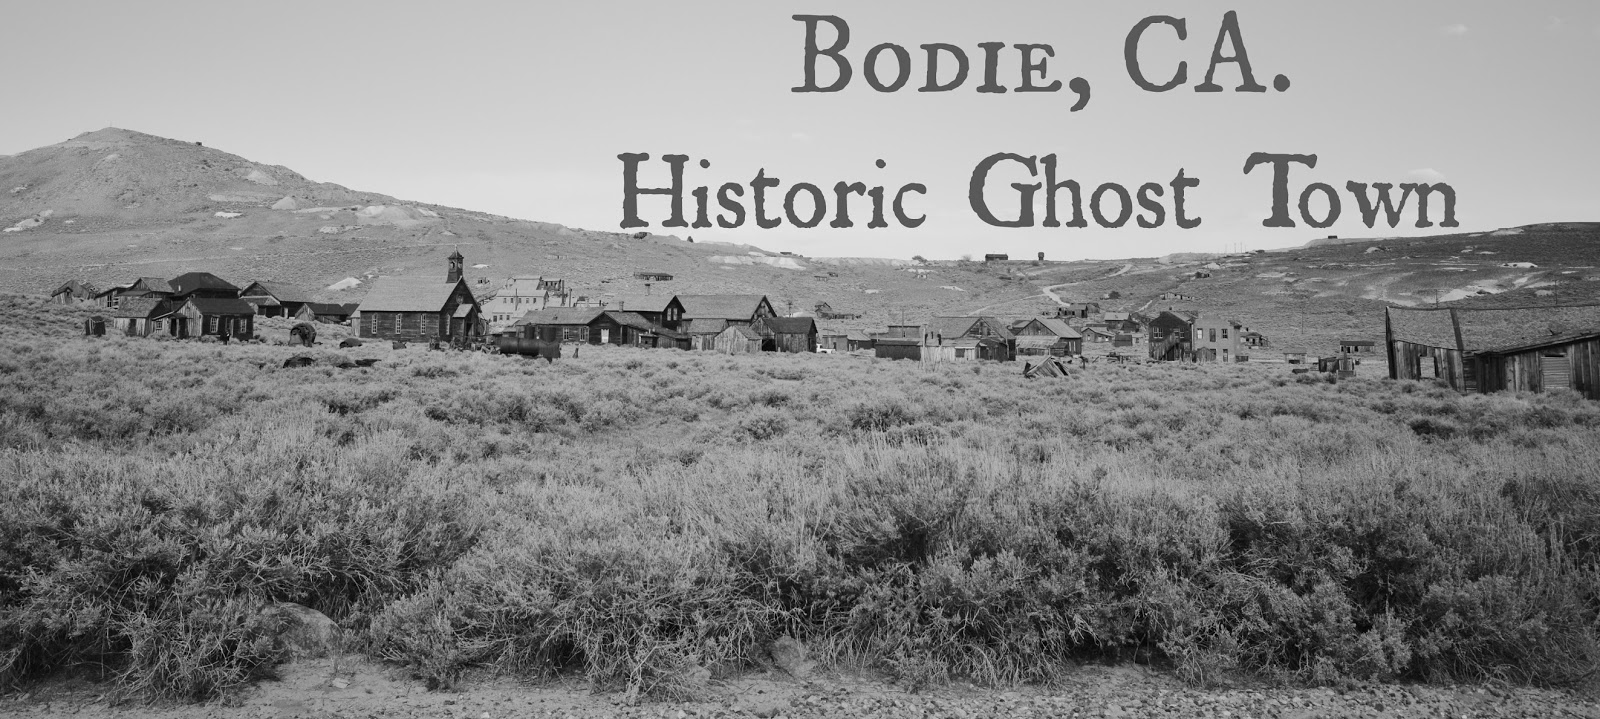 Explore the past of the Wild West Ghost Town of Bodie, CA. #ghosttown #travel #70dayroadtrip